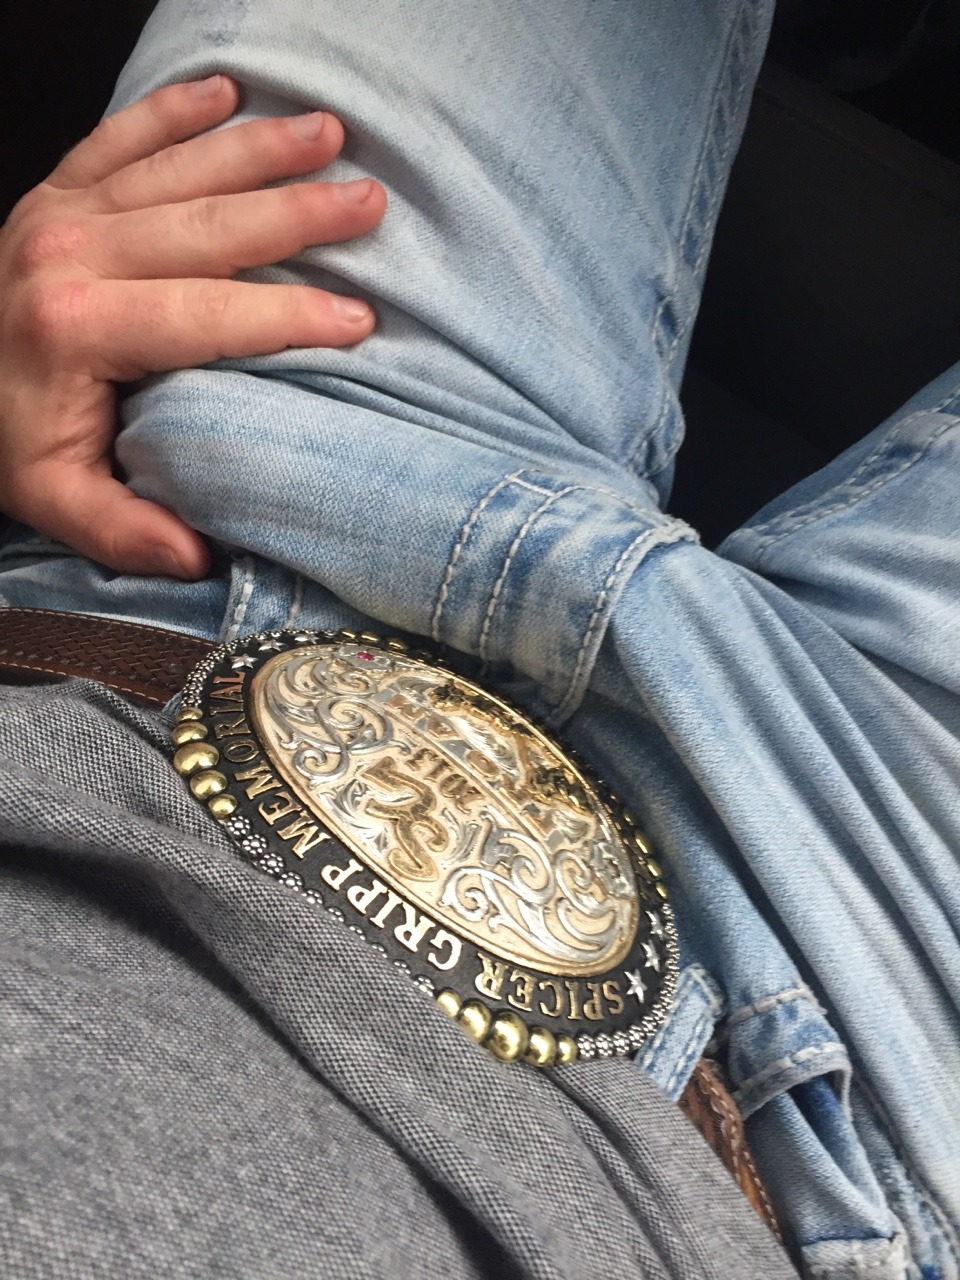 2018-06-14 13:29:25 - you2knowit cowboy563 morning wood to the max dieselstrokers https://www.neofic.com